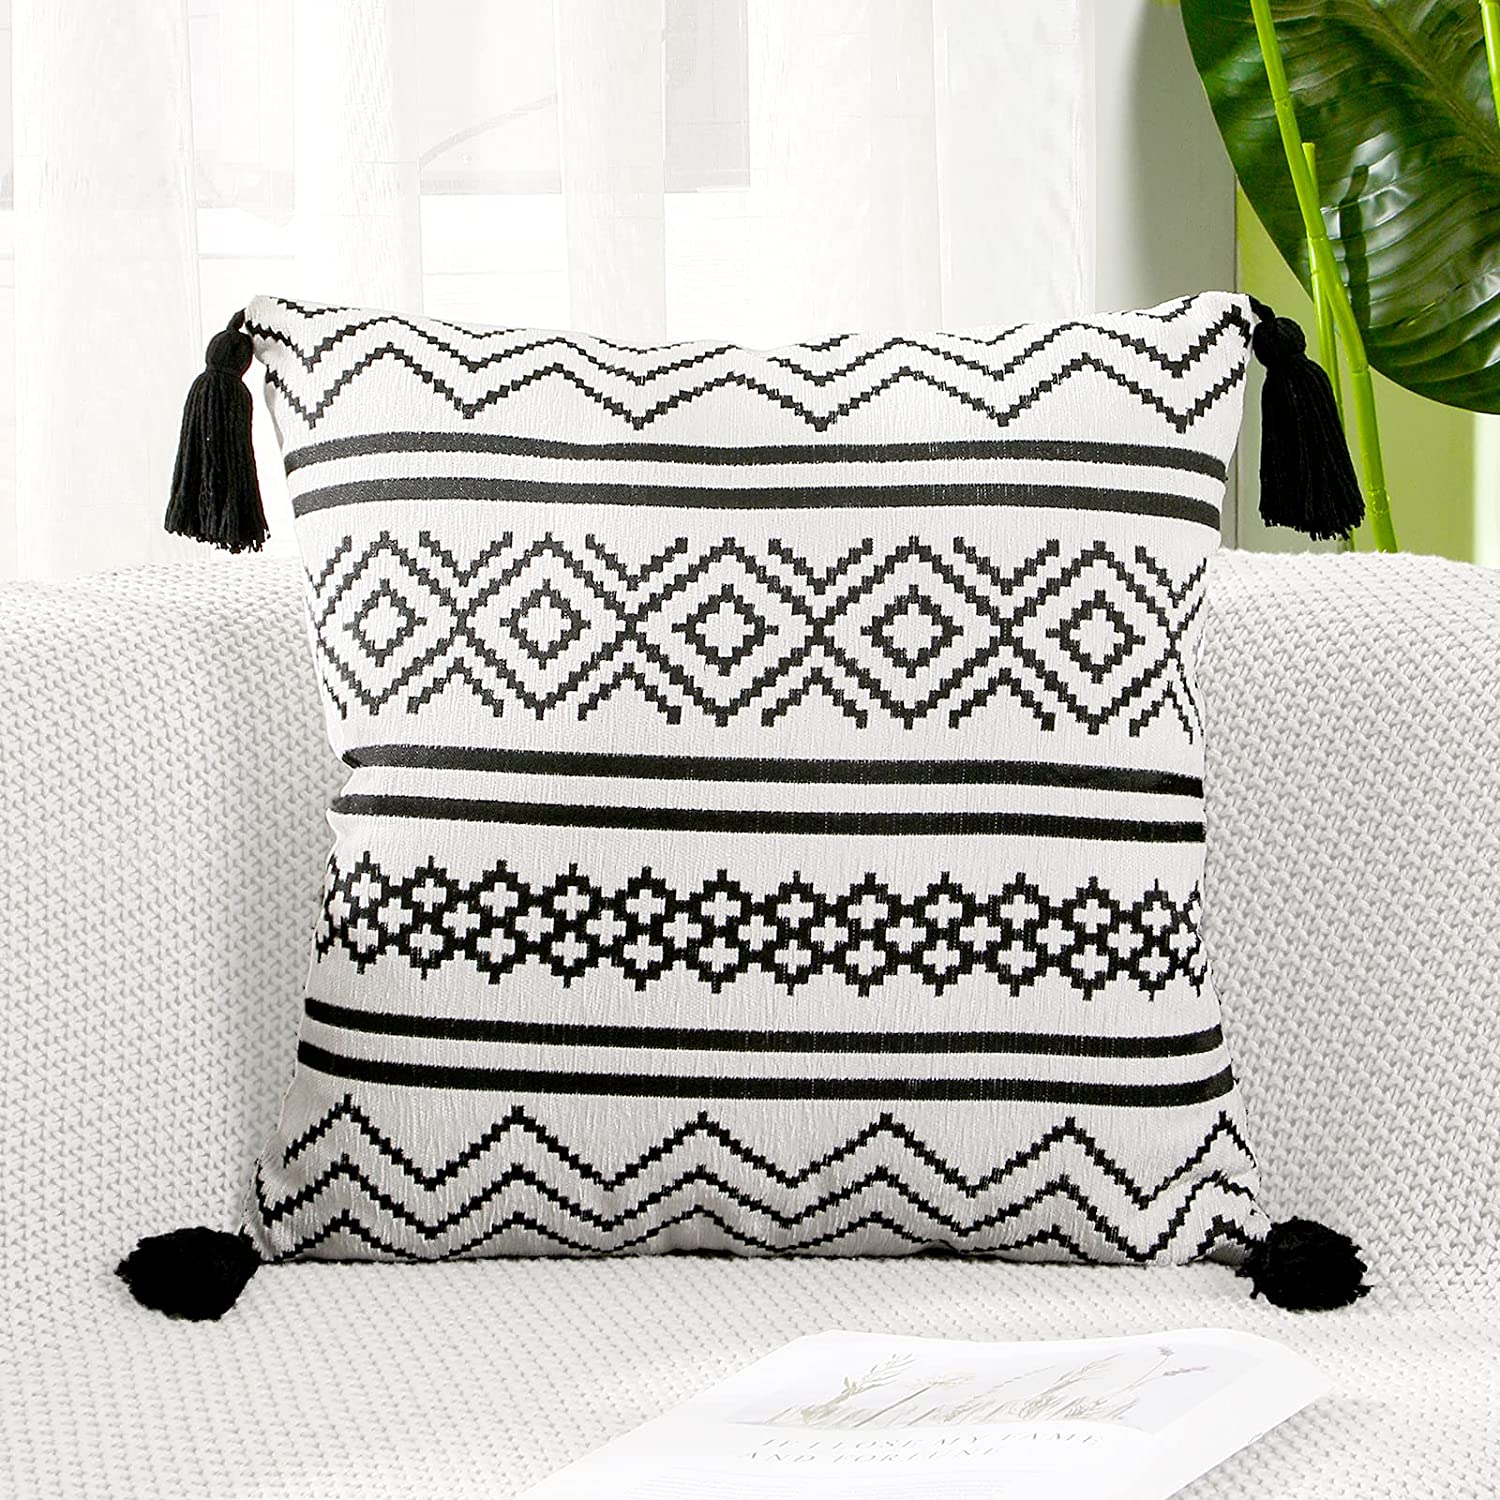 KAWELON Boho Throw Pillow Covers 18x18 Decorative Pillow Cases with Tassels 1 Pack Geometric Style Square Pillowcase for Sofa Couch Bed Bedroom Living Room Farmhouse Home Décor, White and Black